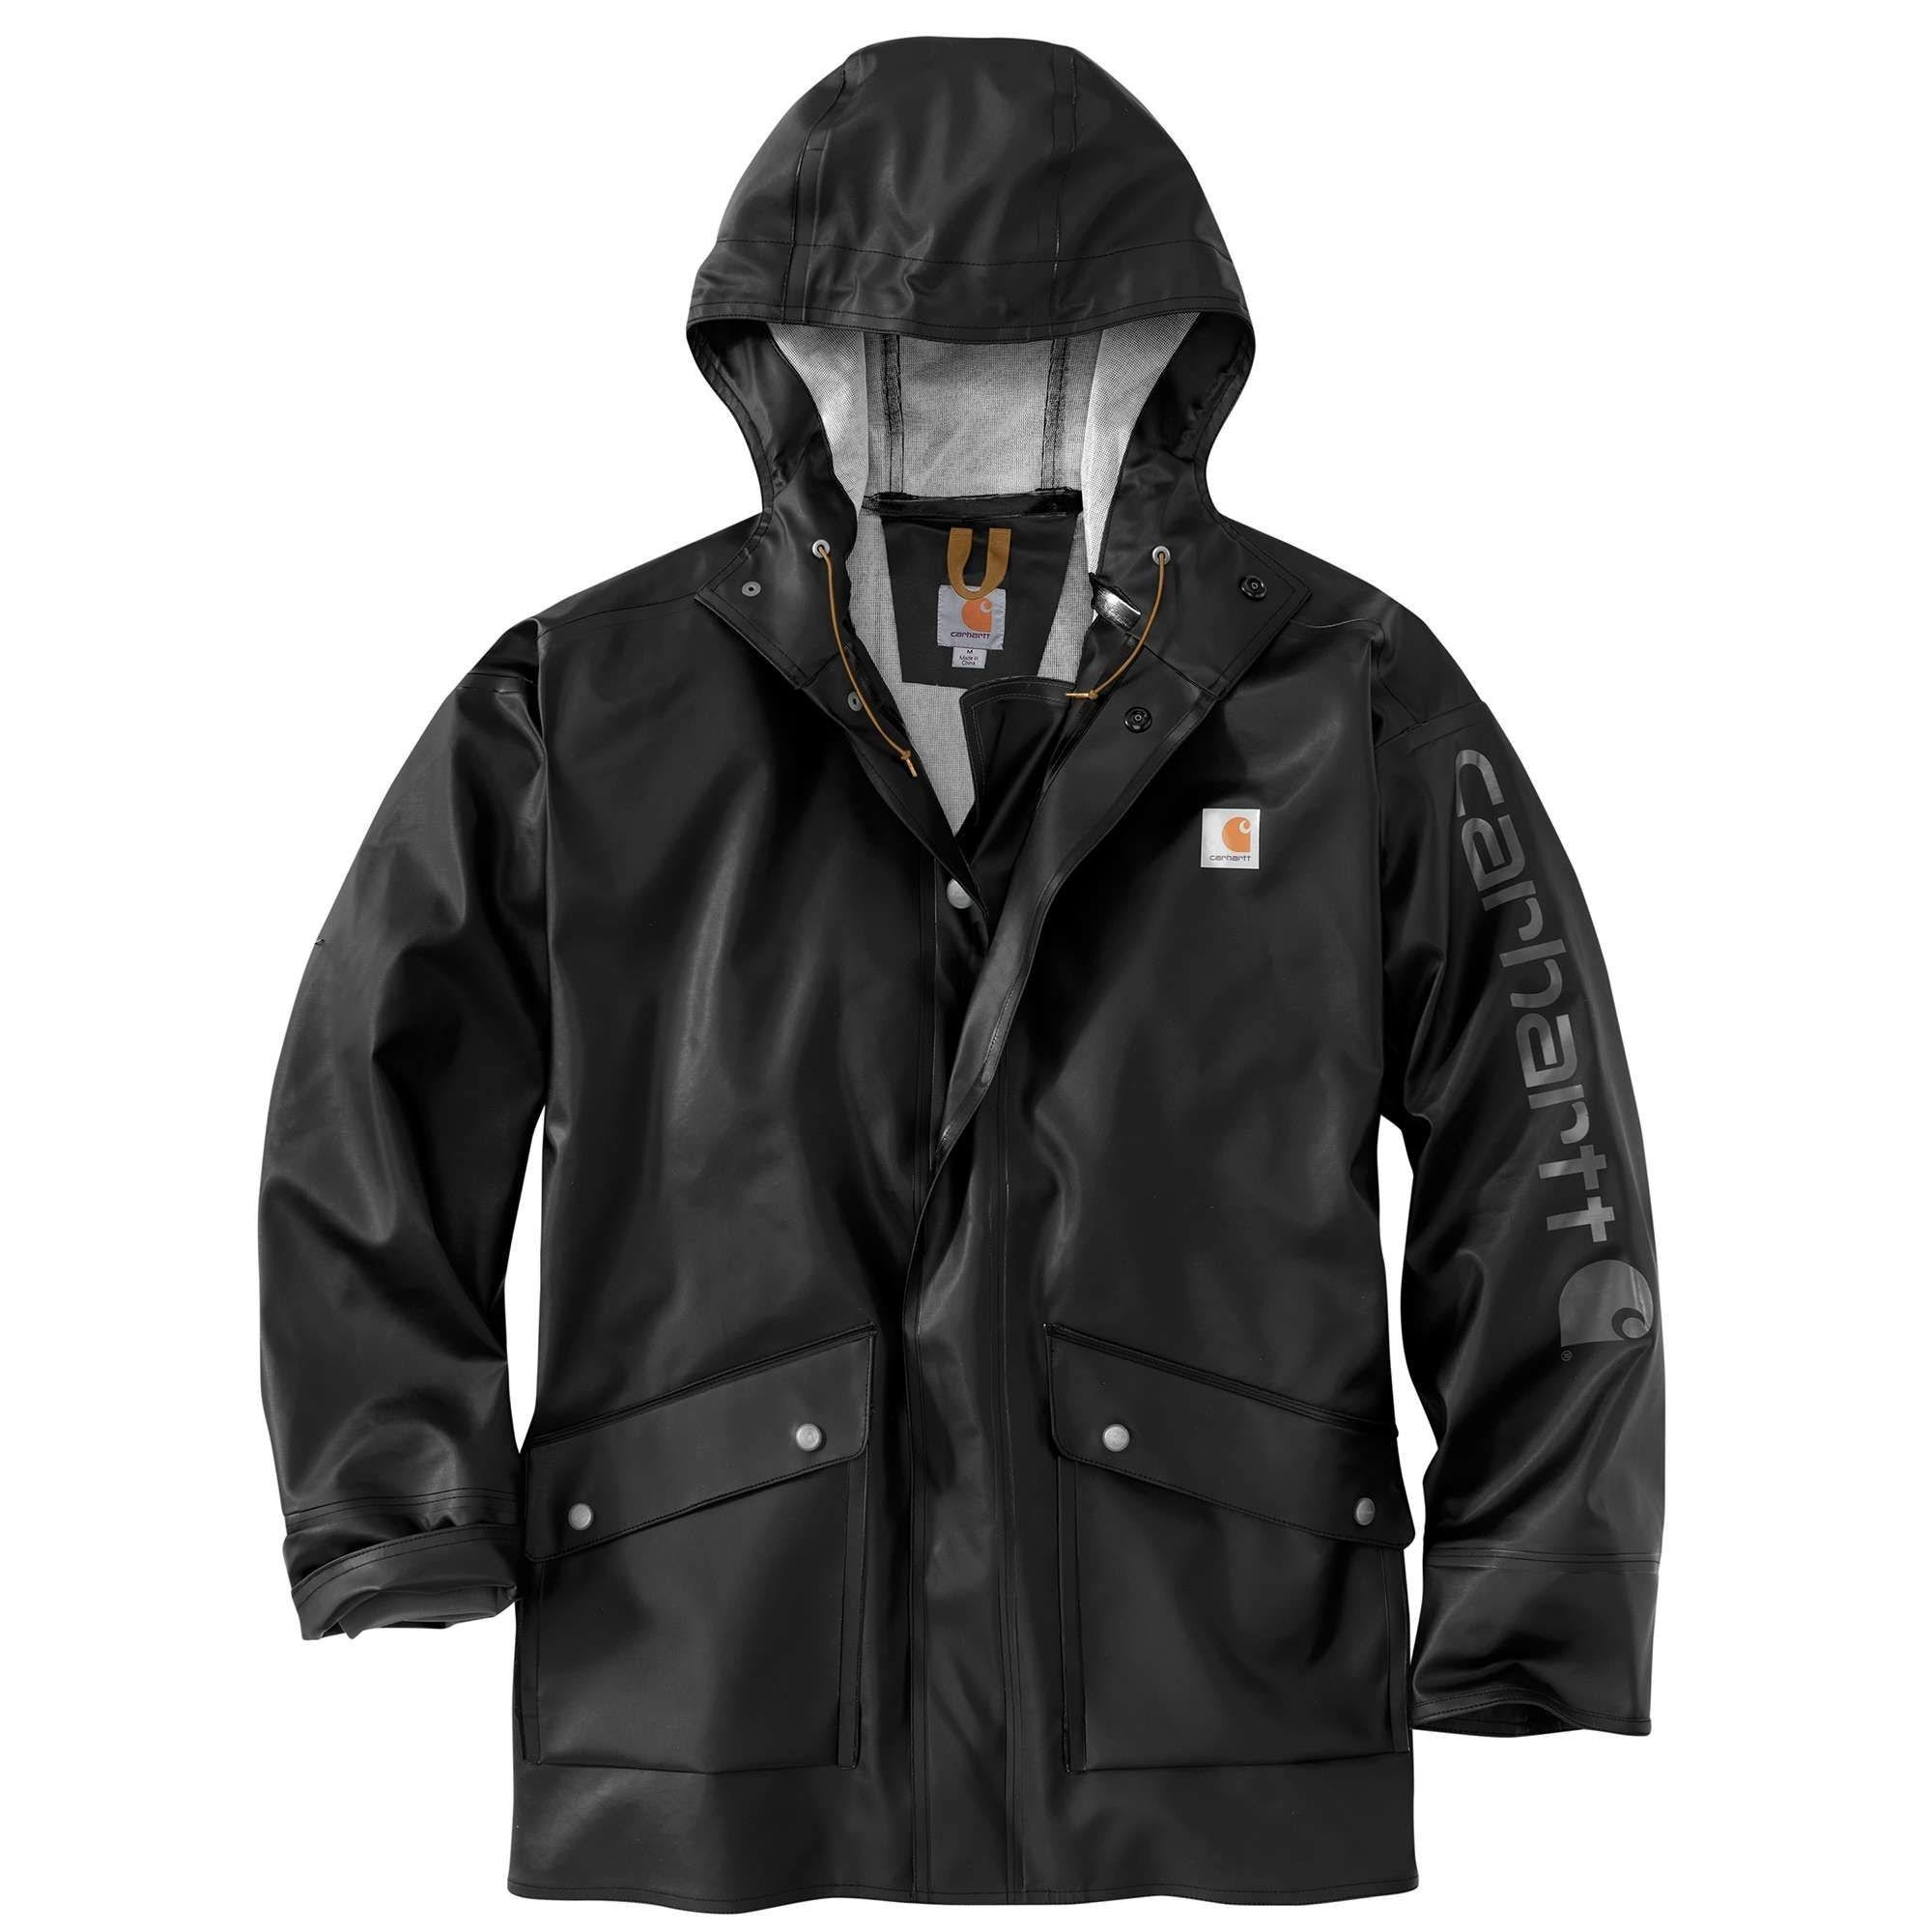 Men's Carhartt Midweight Waterproof Rainstorm Jacket : 2XL Black